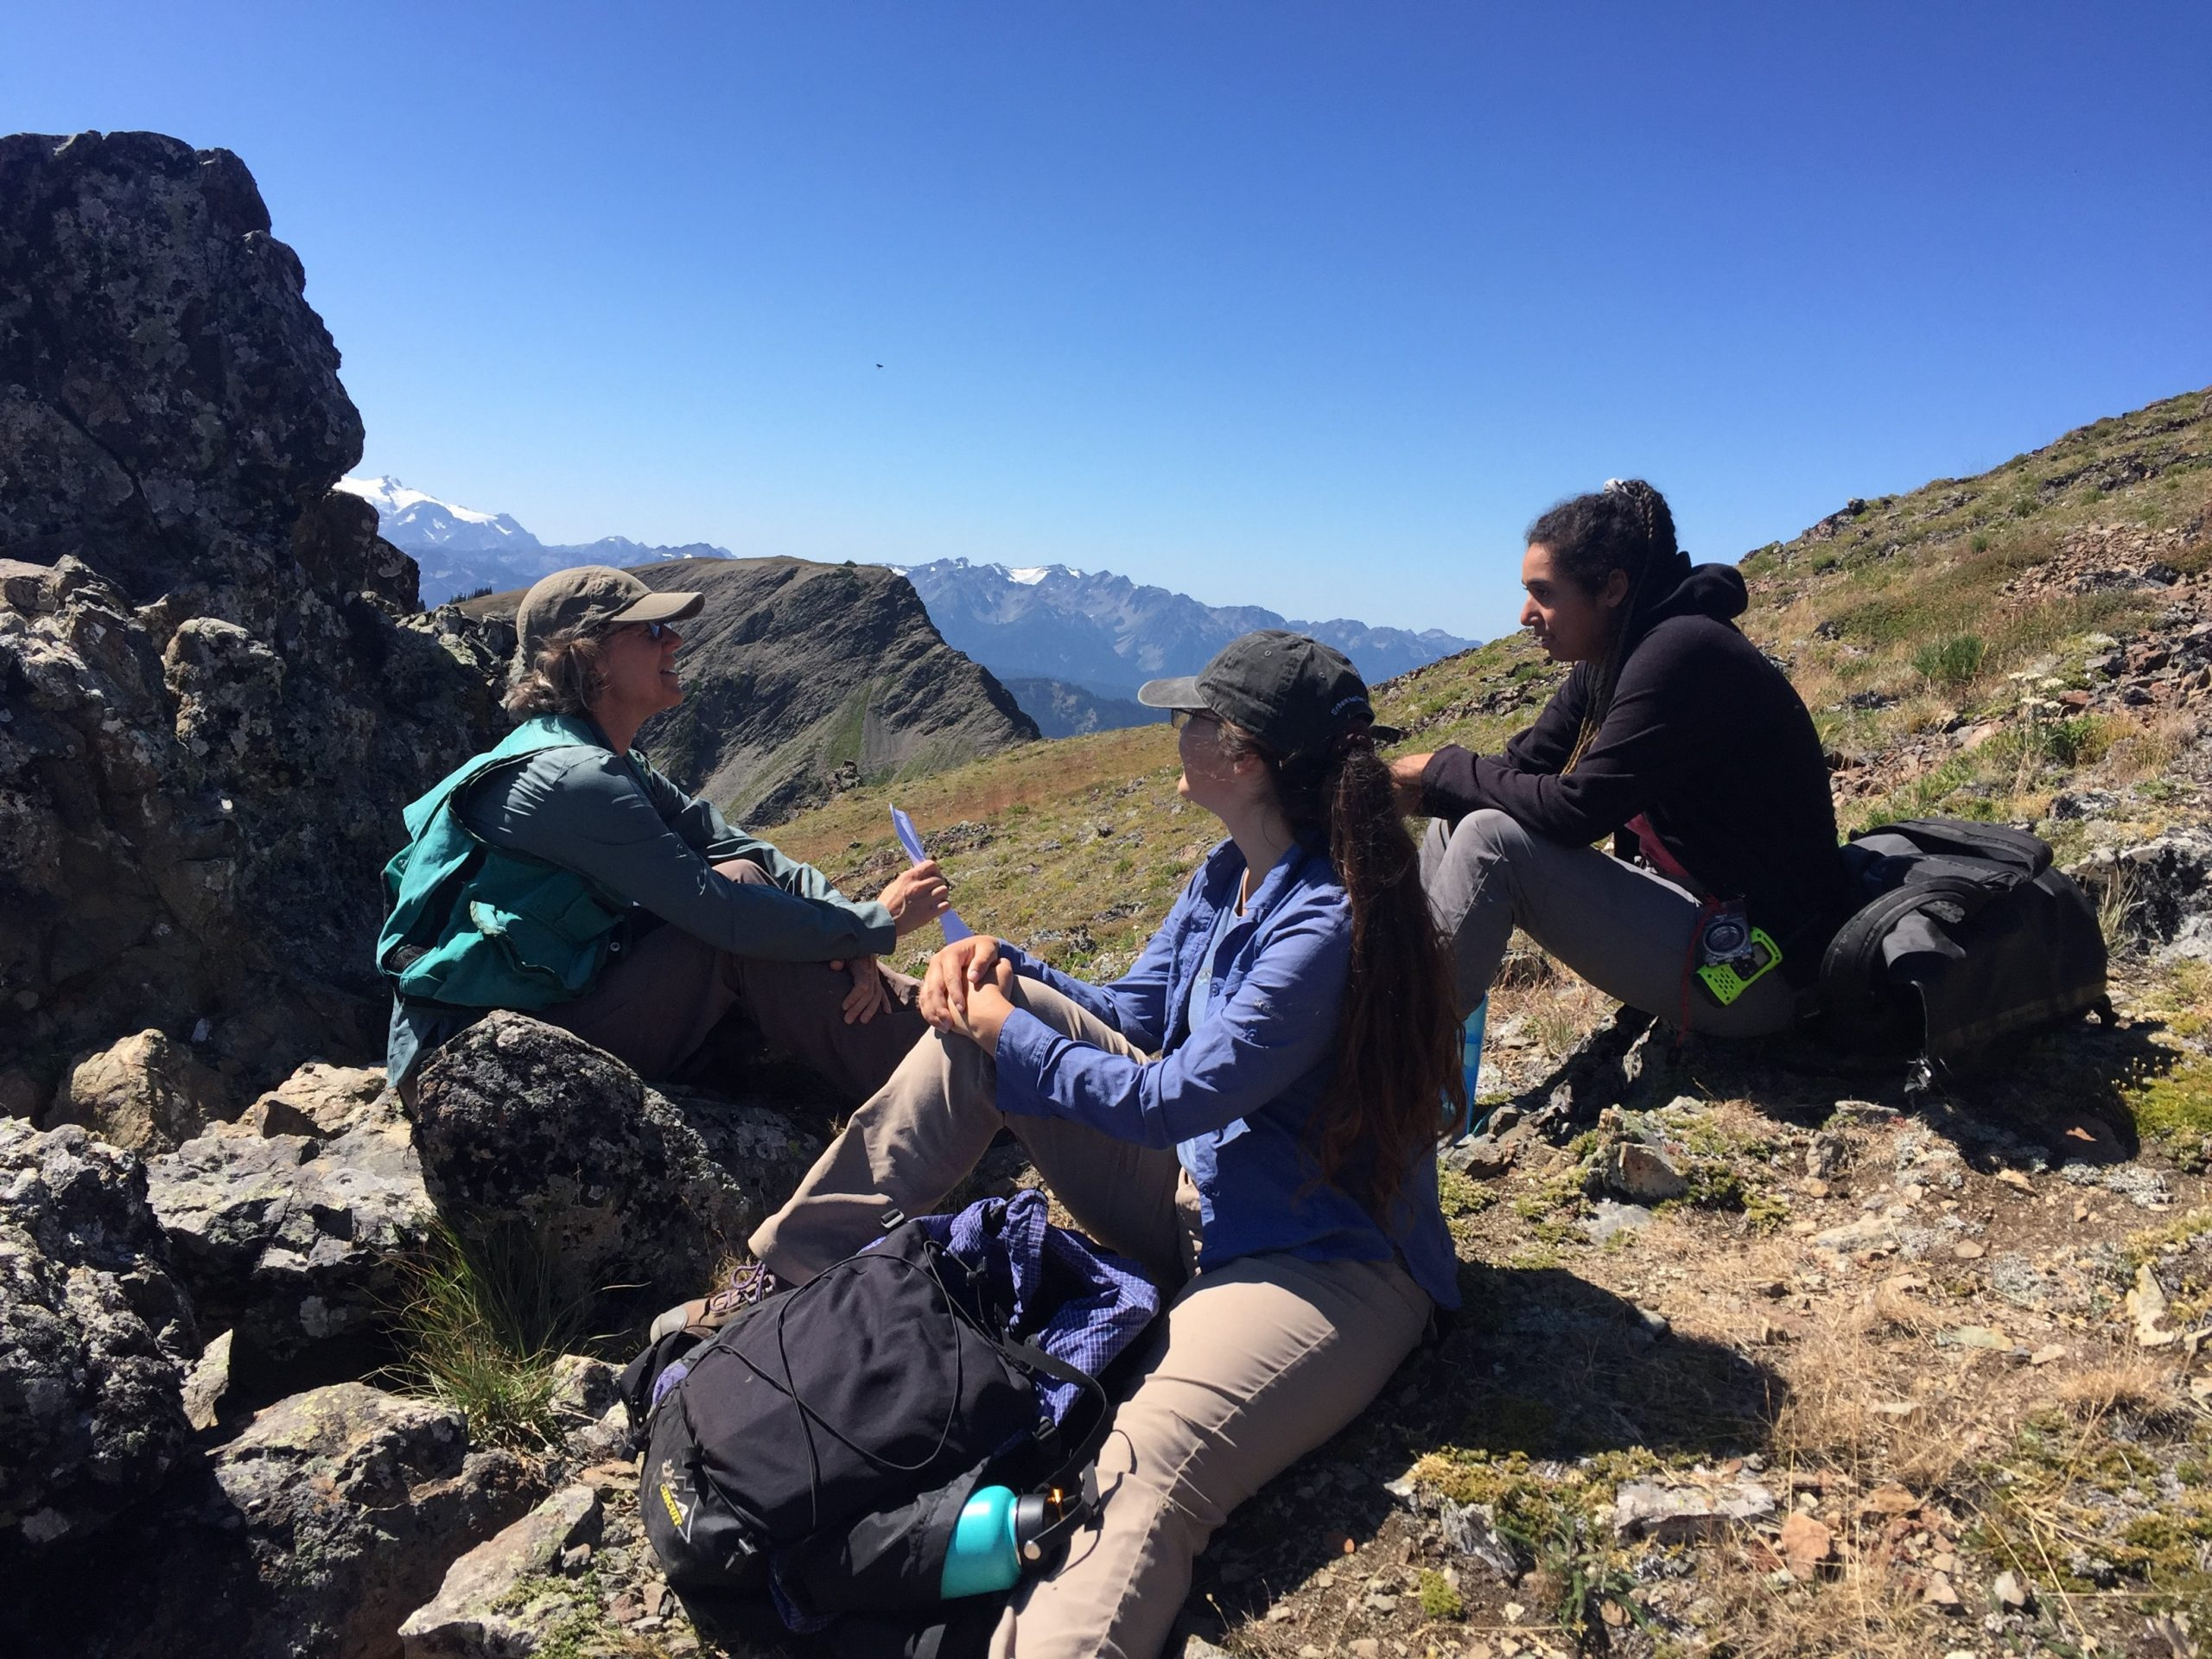 Wendy sits with the 2019 interns to discuss making a seed collection while out in the field. Photo credit: Stacy Kinsell, courtesy of University of Washington Botanic Gardens.